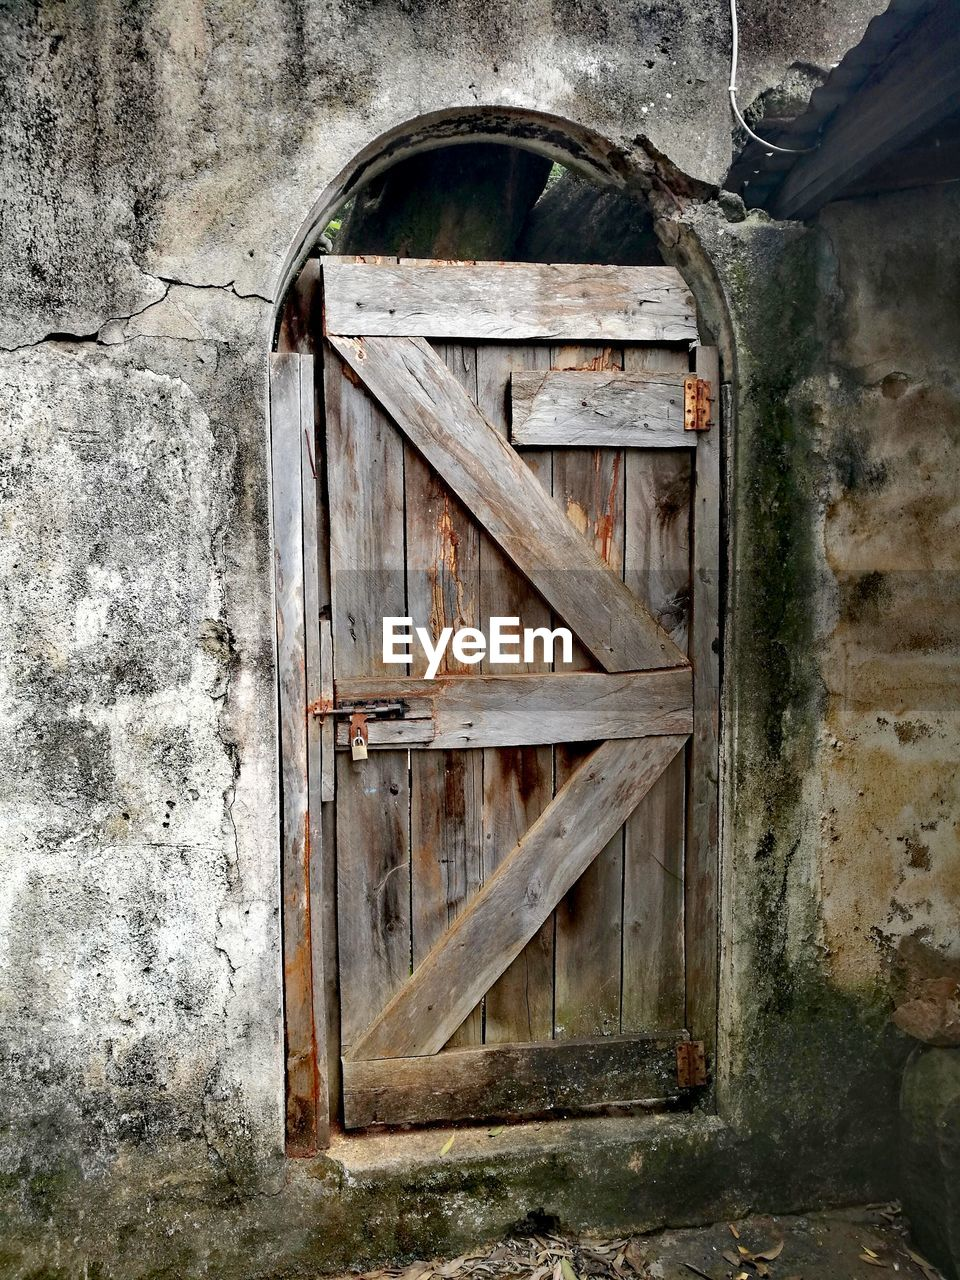 old, no people, architecture, wood - material, built structure, day, weathered, door, entrance, abandoned, wall - building feature, metal, wall, outdoors, window, building exterior, damaged, decline, close-up, deterioration, stone wall